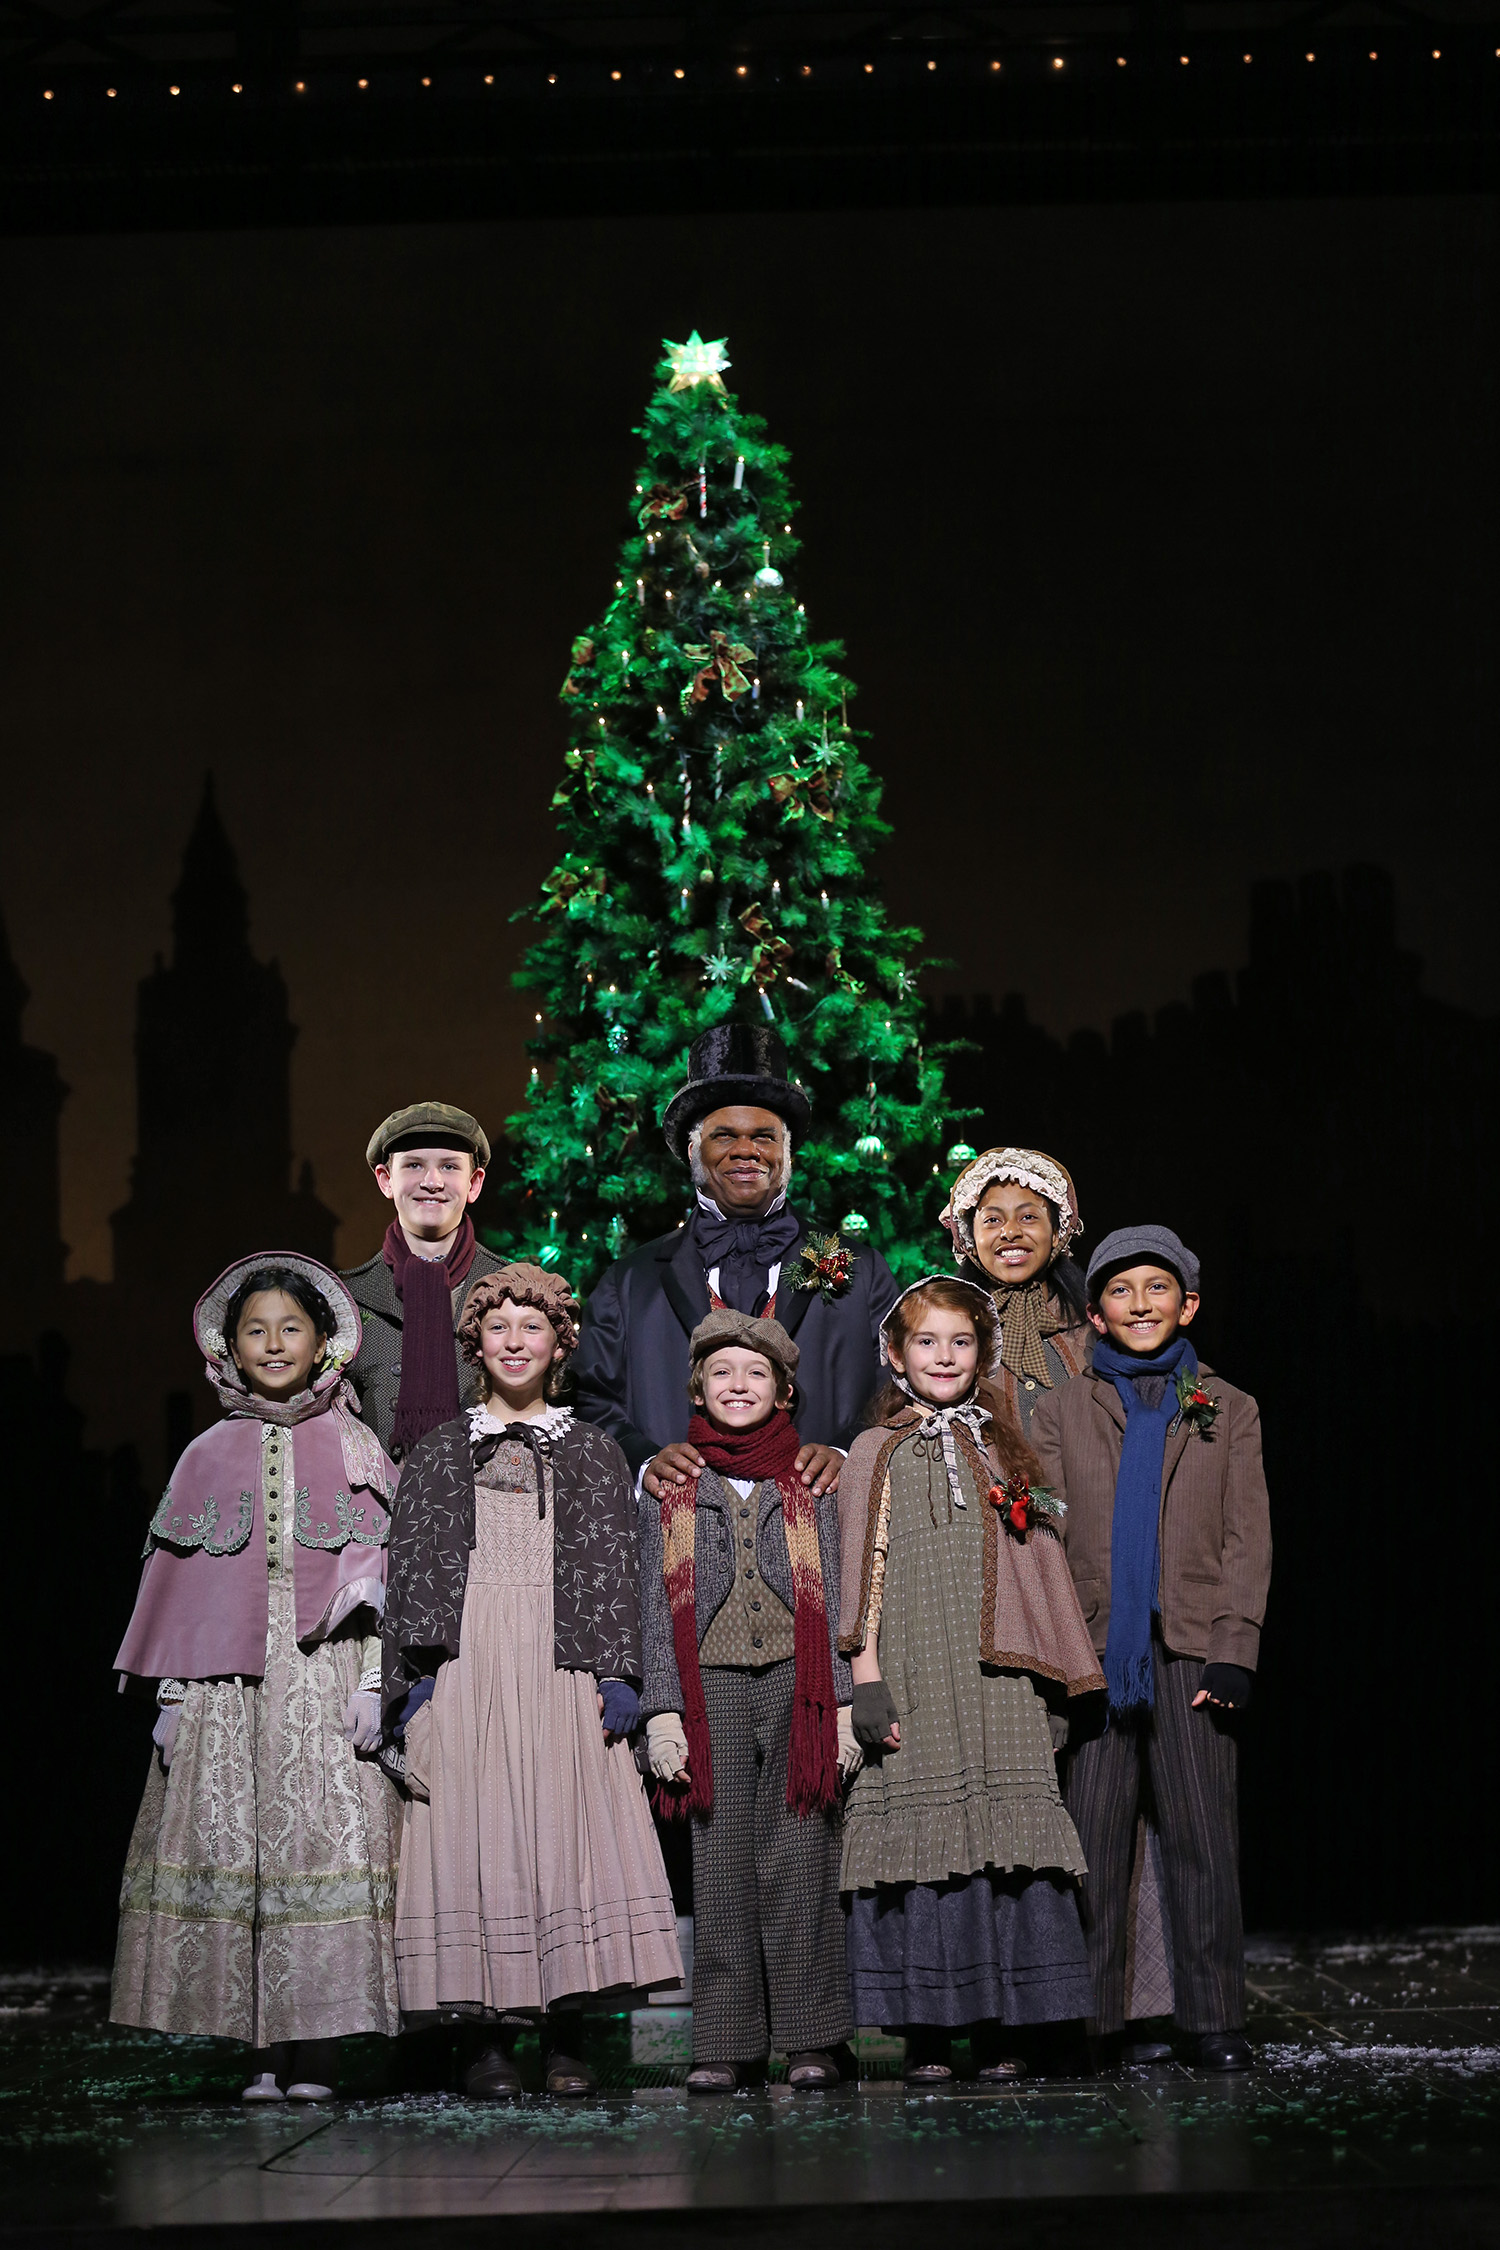 A smiling man in Victorian-style clothes and a top hat stands with a group of children, also in Victorian-style clothing, in front a large Christmas tree.